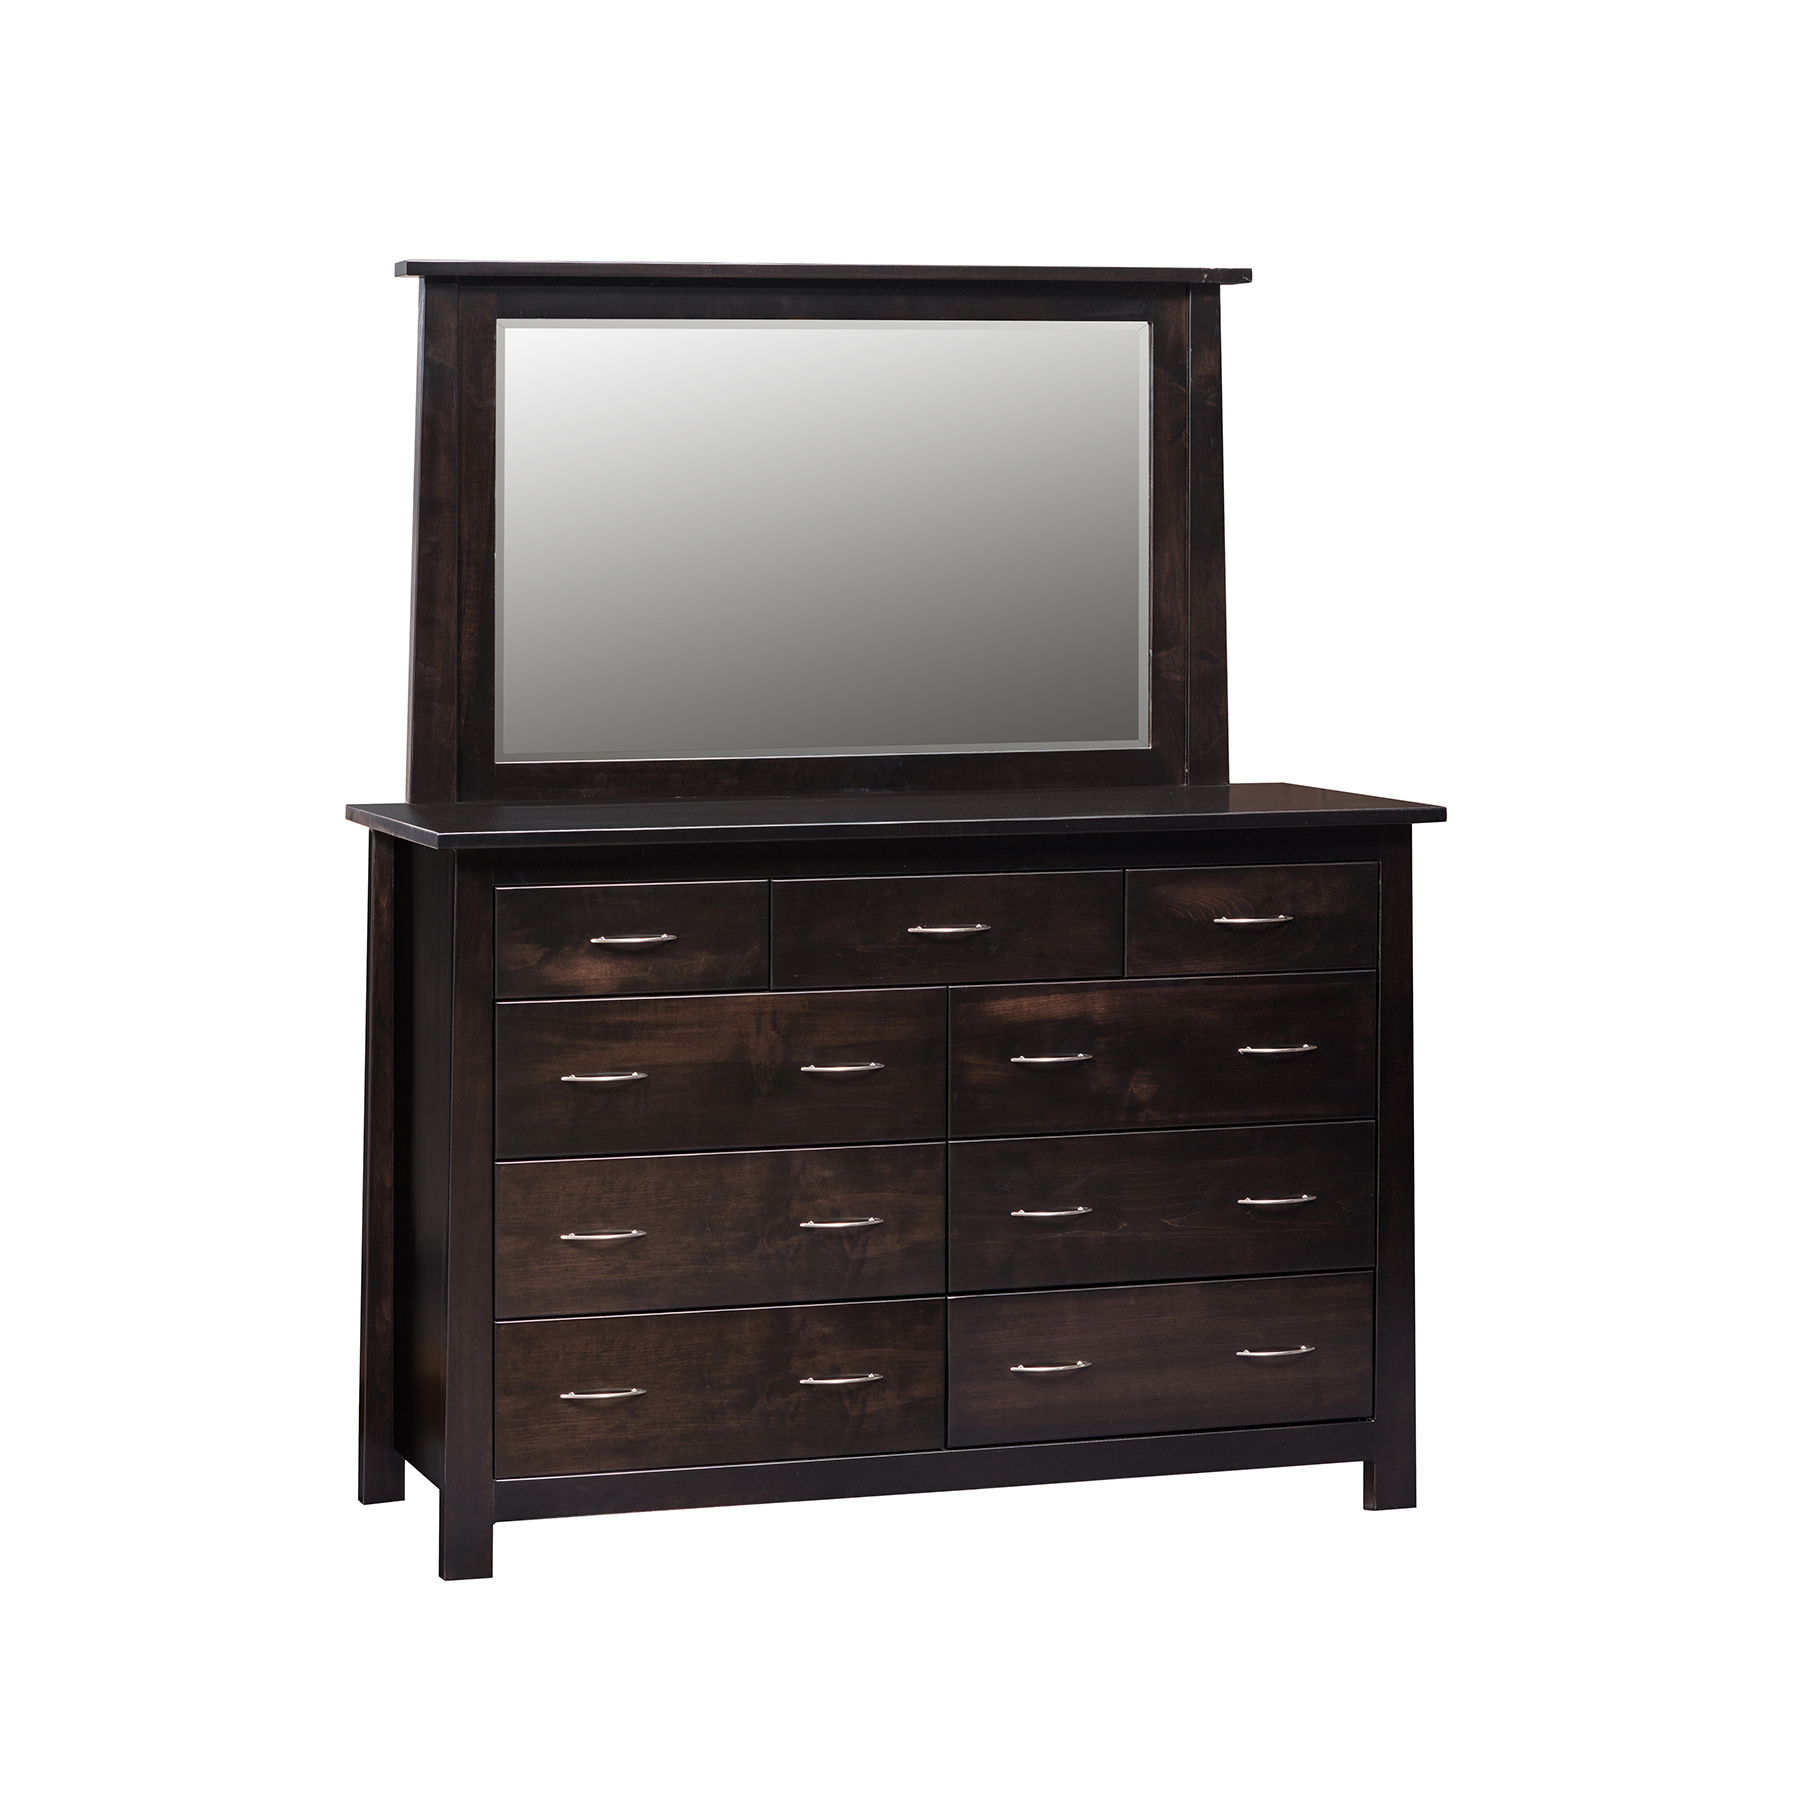 Burlington Double Mule Dresser and Mirro